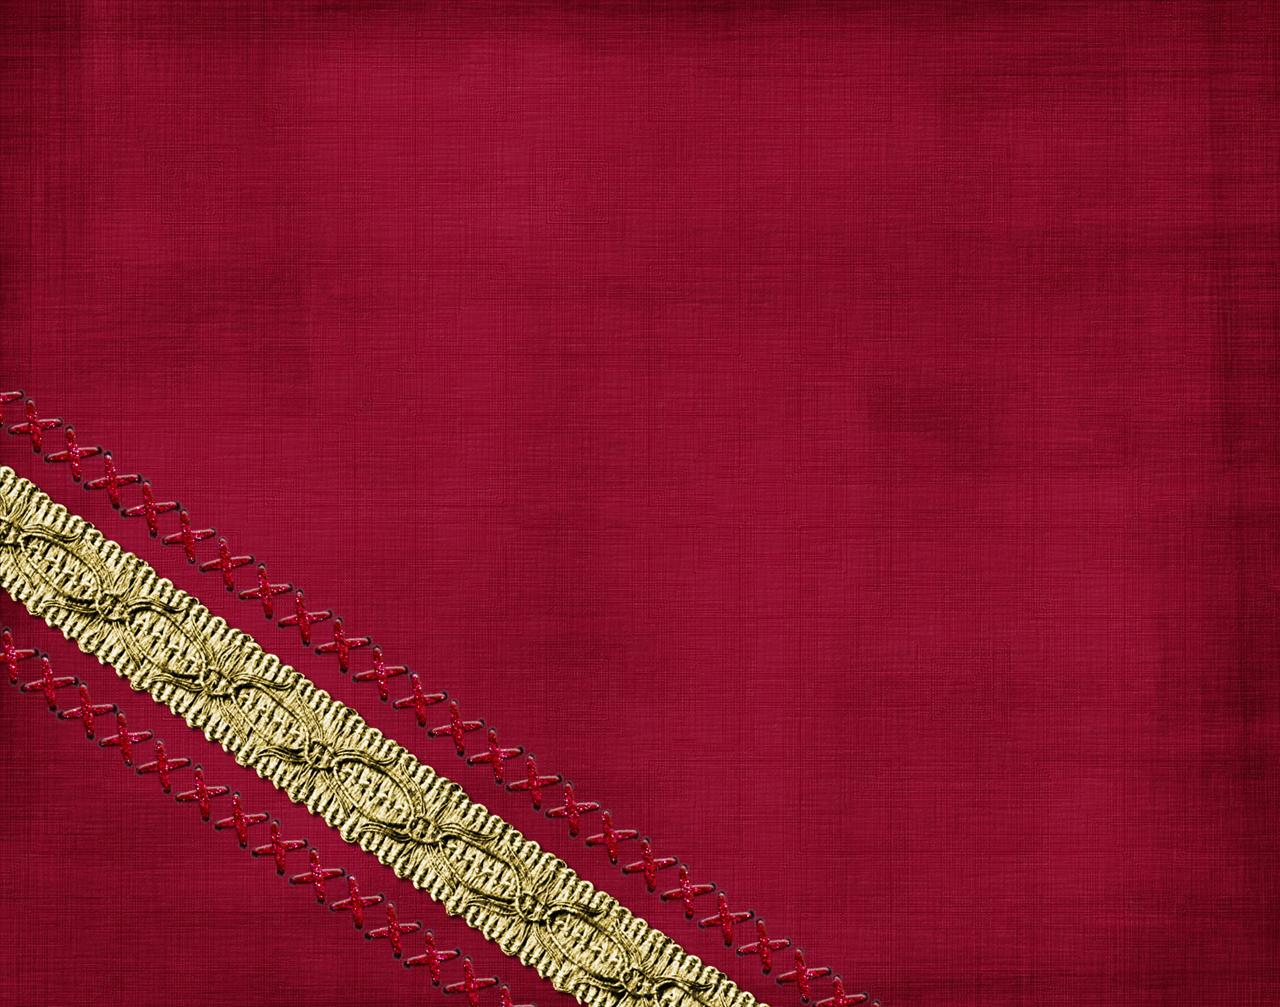 Cranberry Backgrounds